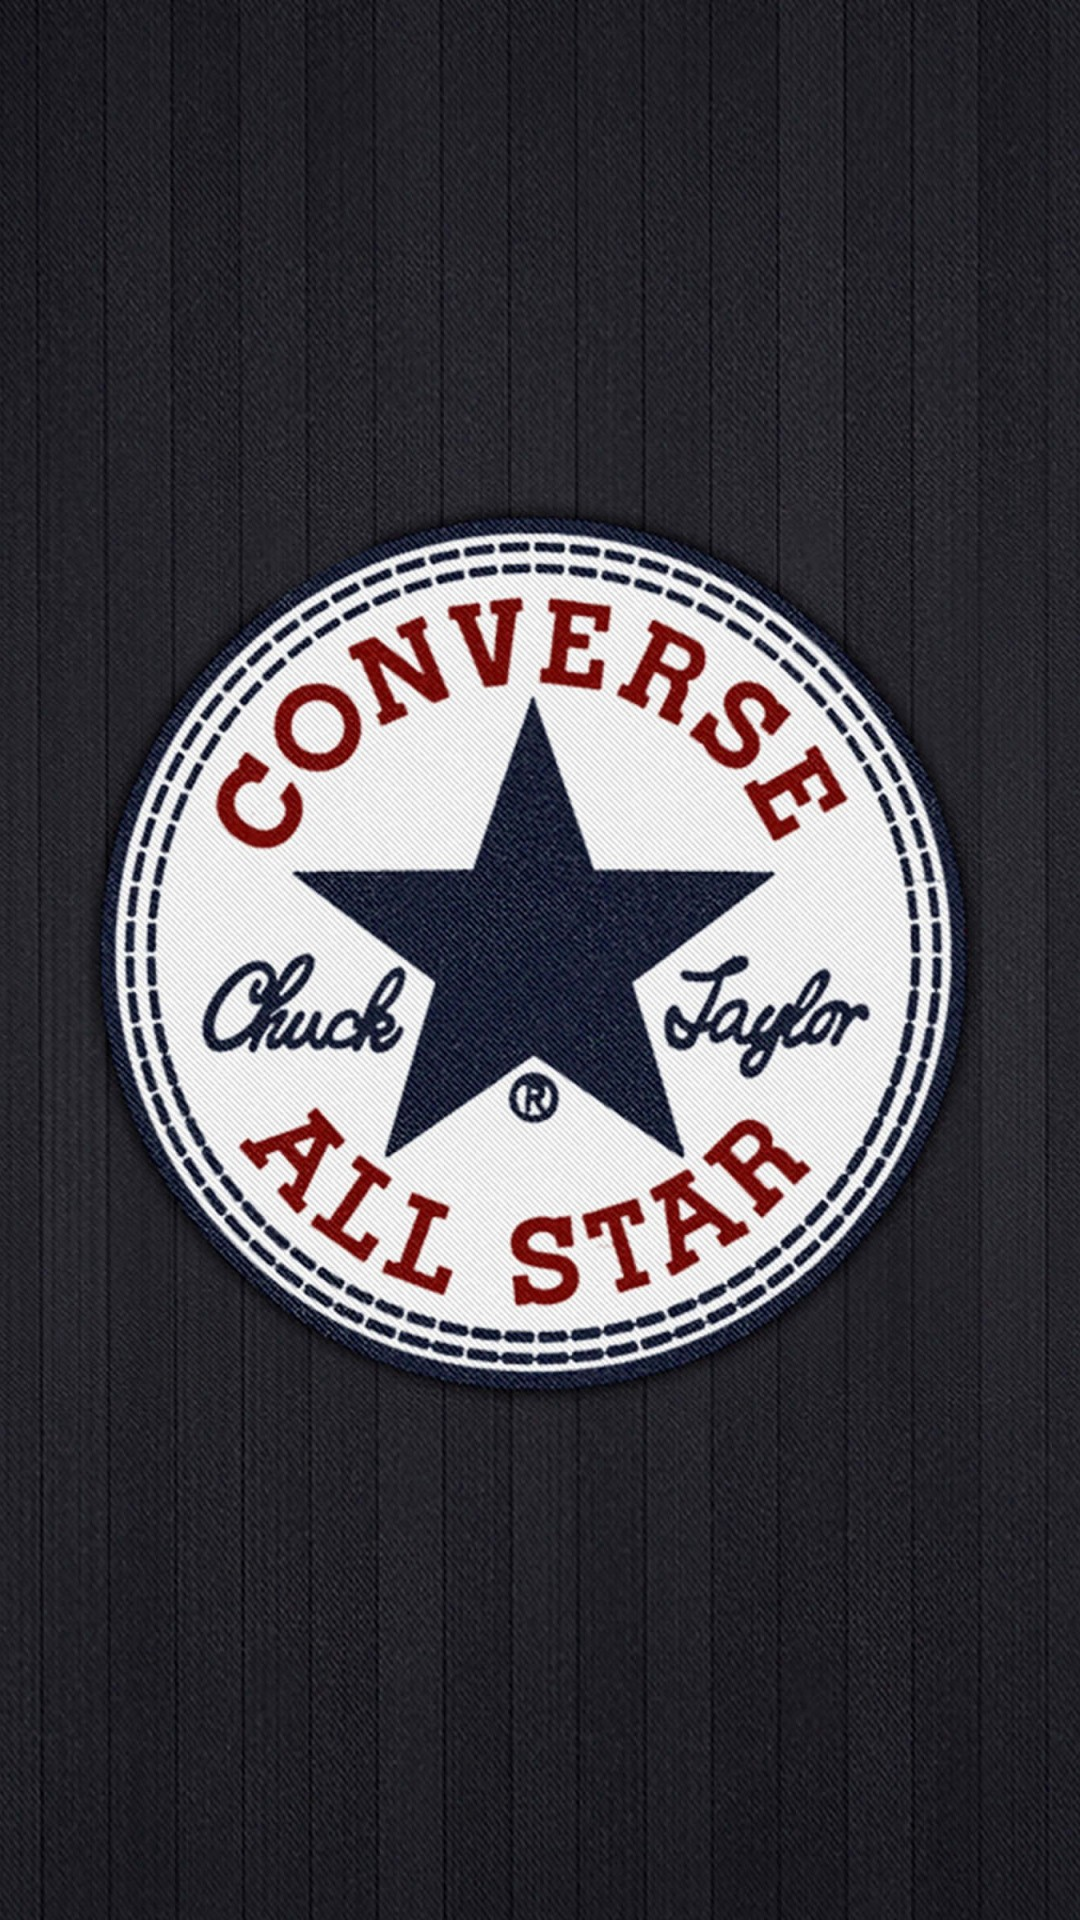 Converse All Star Wallpaper for SAMSUNG Galaxy Note 3